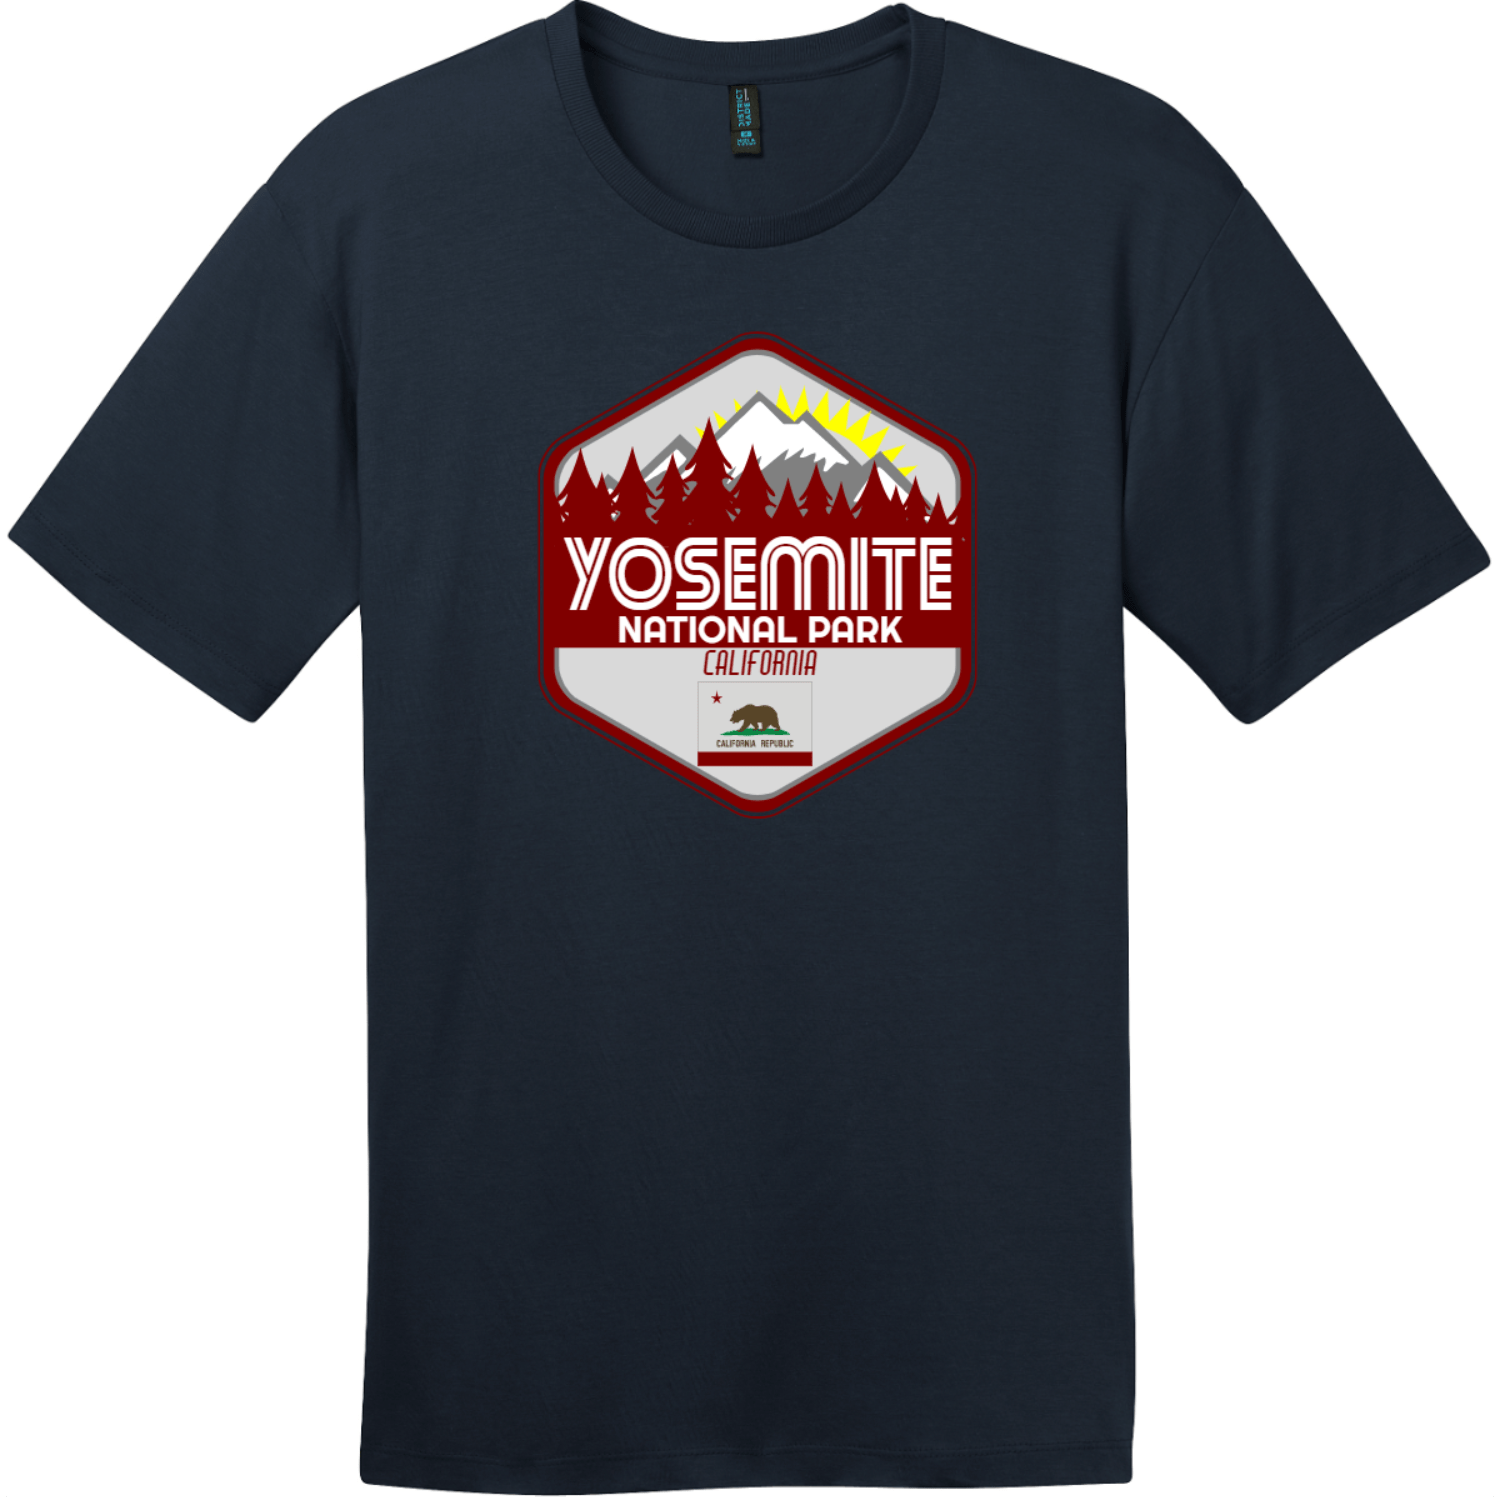 Yosemite National Park T-Shirt New Navy District Perfect Weight Tee DT104